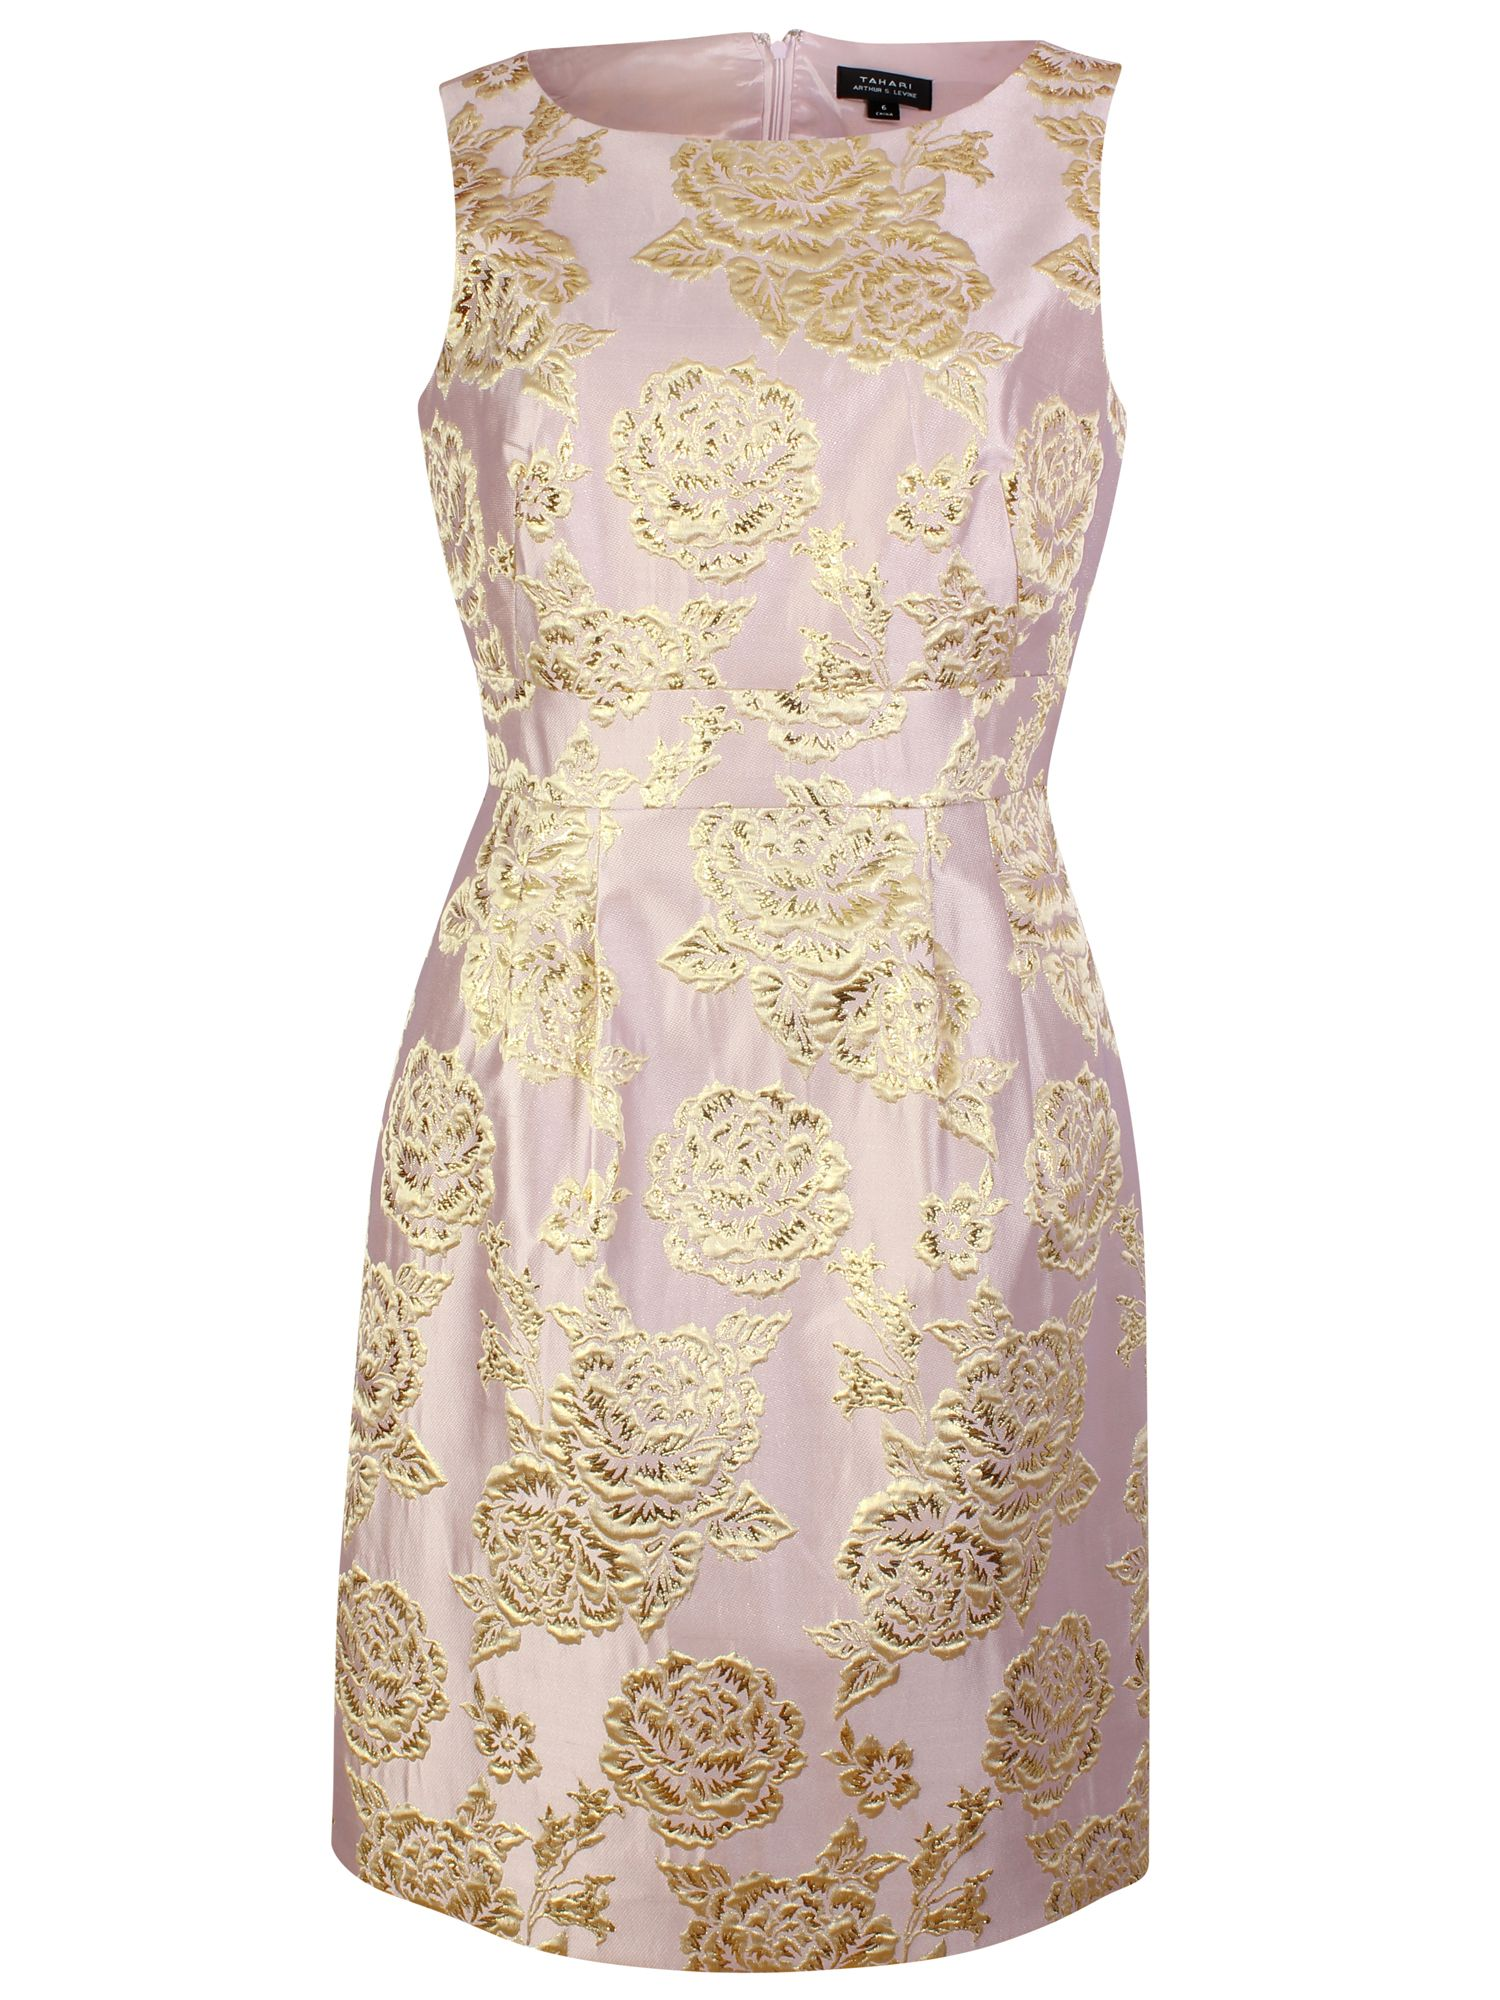 Tahari ASL Gold Print Dress, Lilac